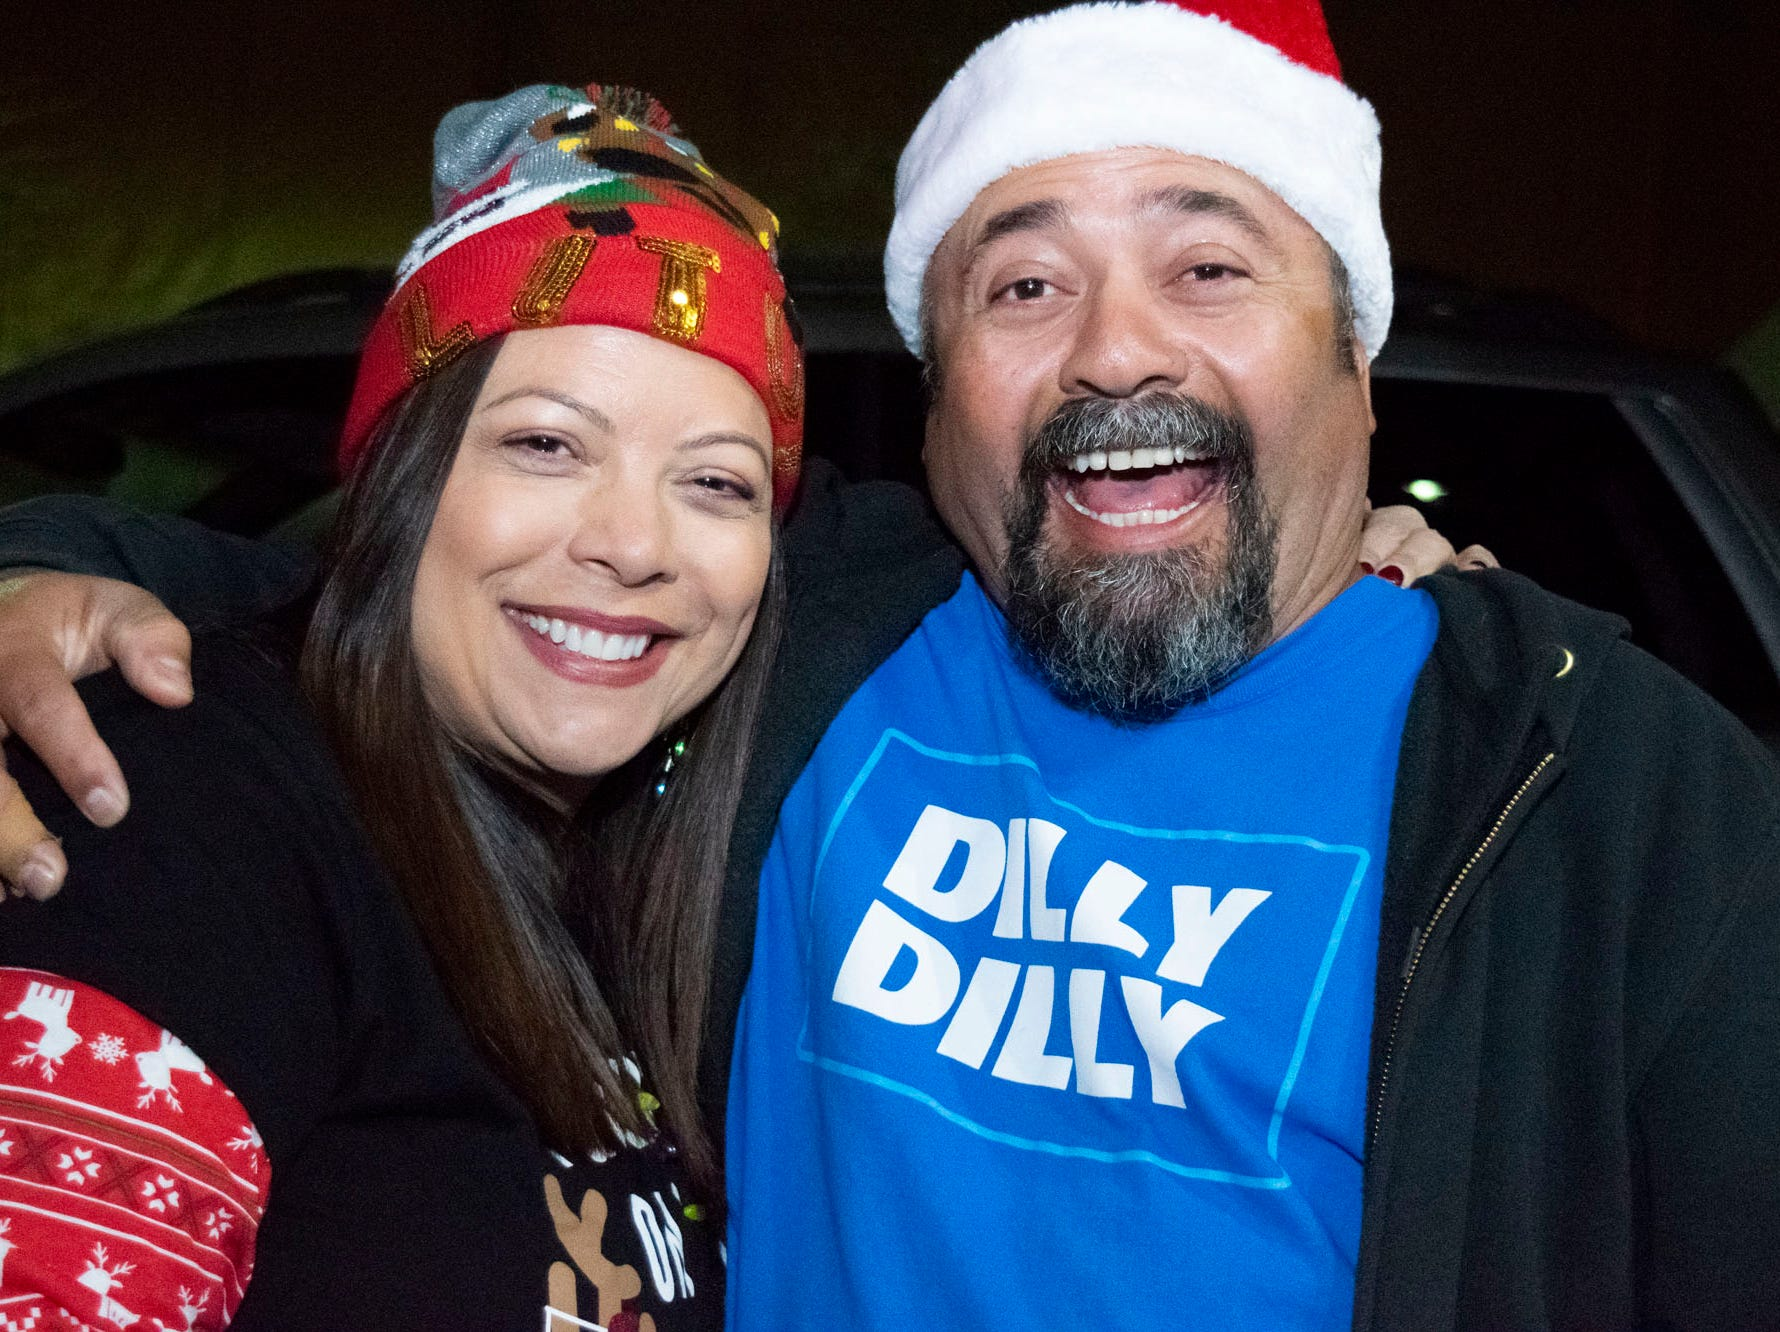 Gina and Tony Cuevas get merry at the Reno Santa Pub Crawl on Saturday, Dec. 15, 2018.